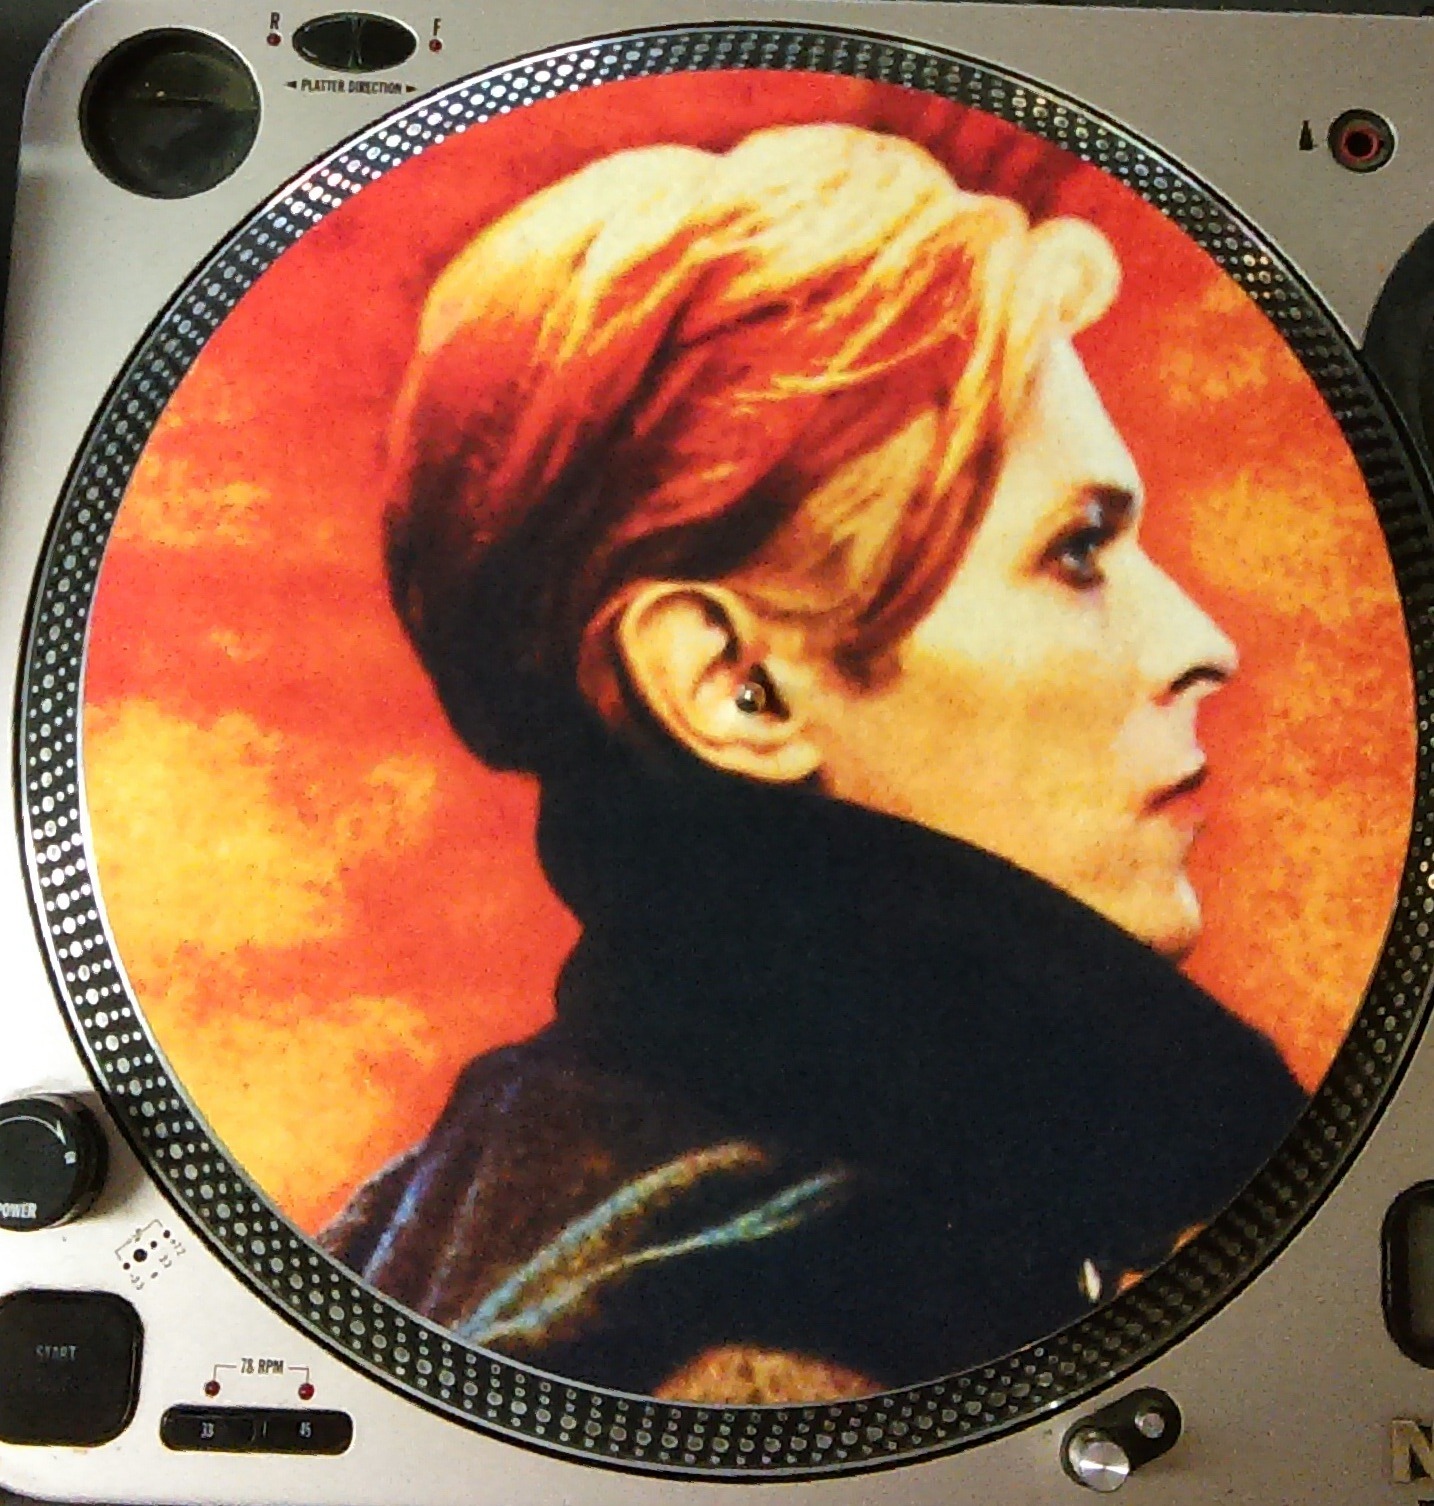 David Bowie/LOW LP SLIPMAT